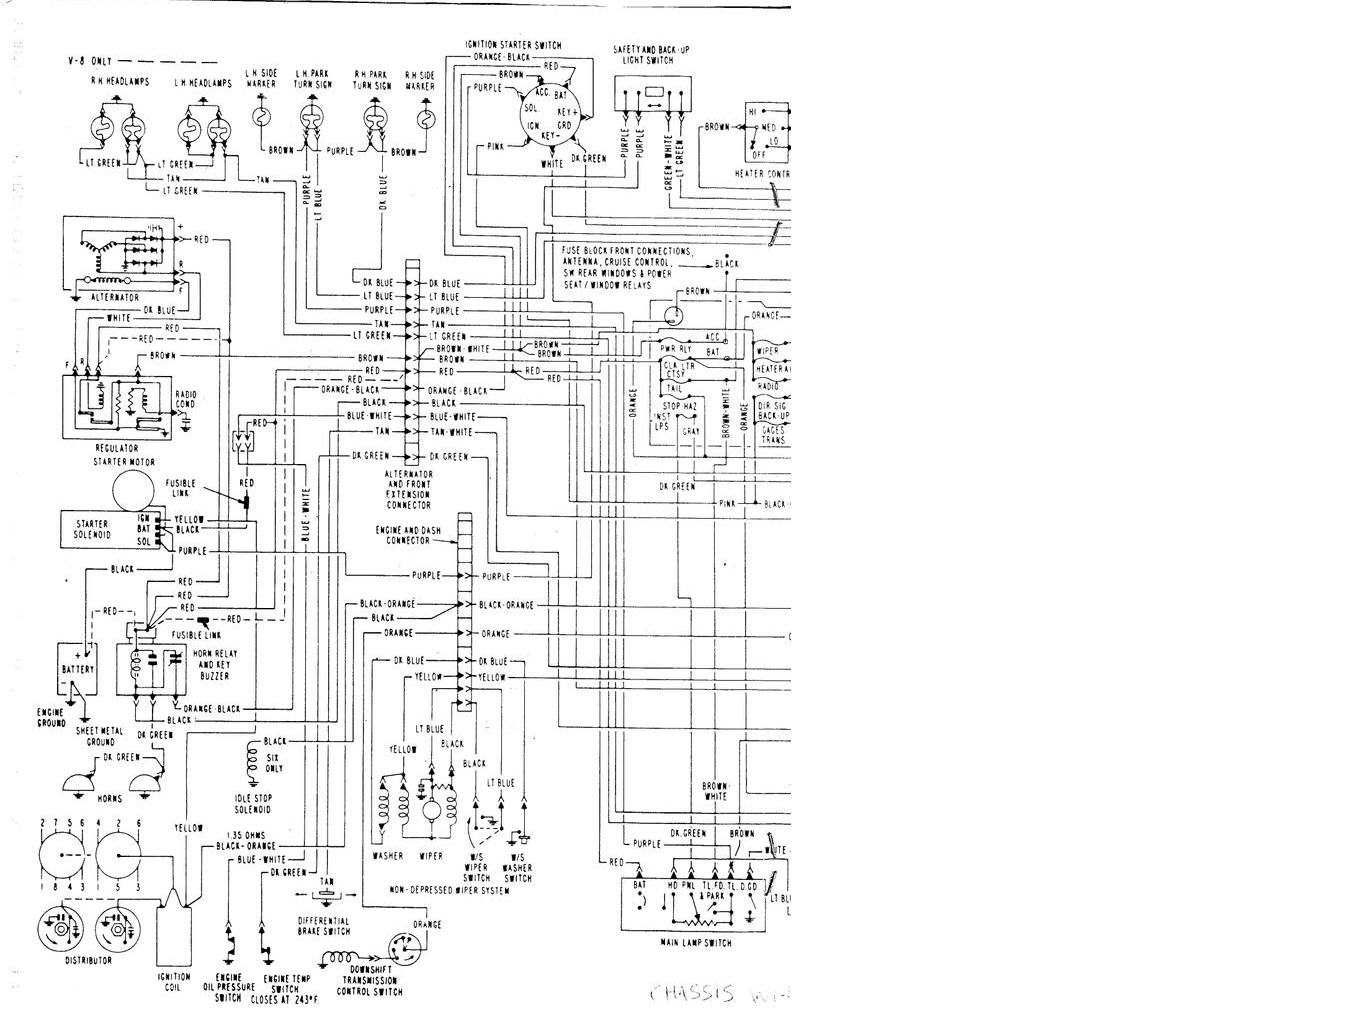 Wiring Diagram 455 Olds